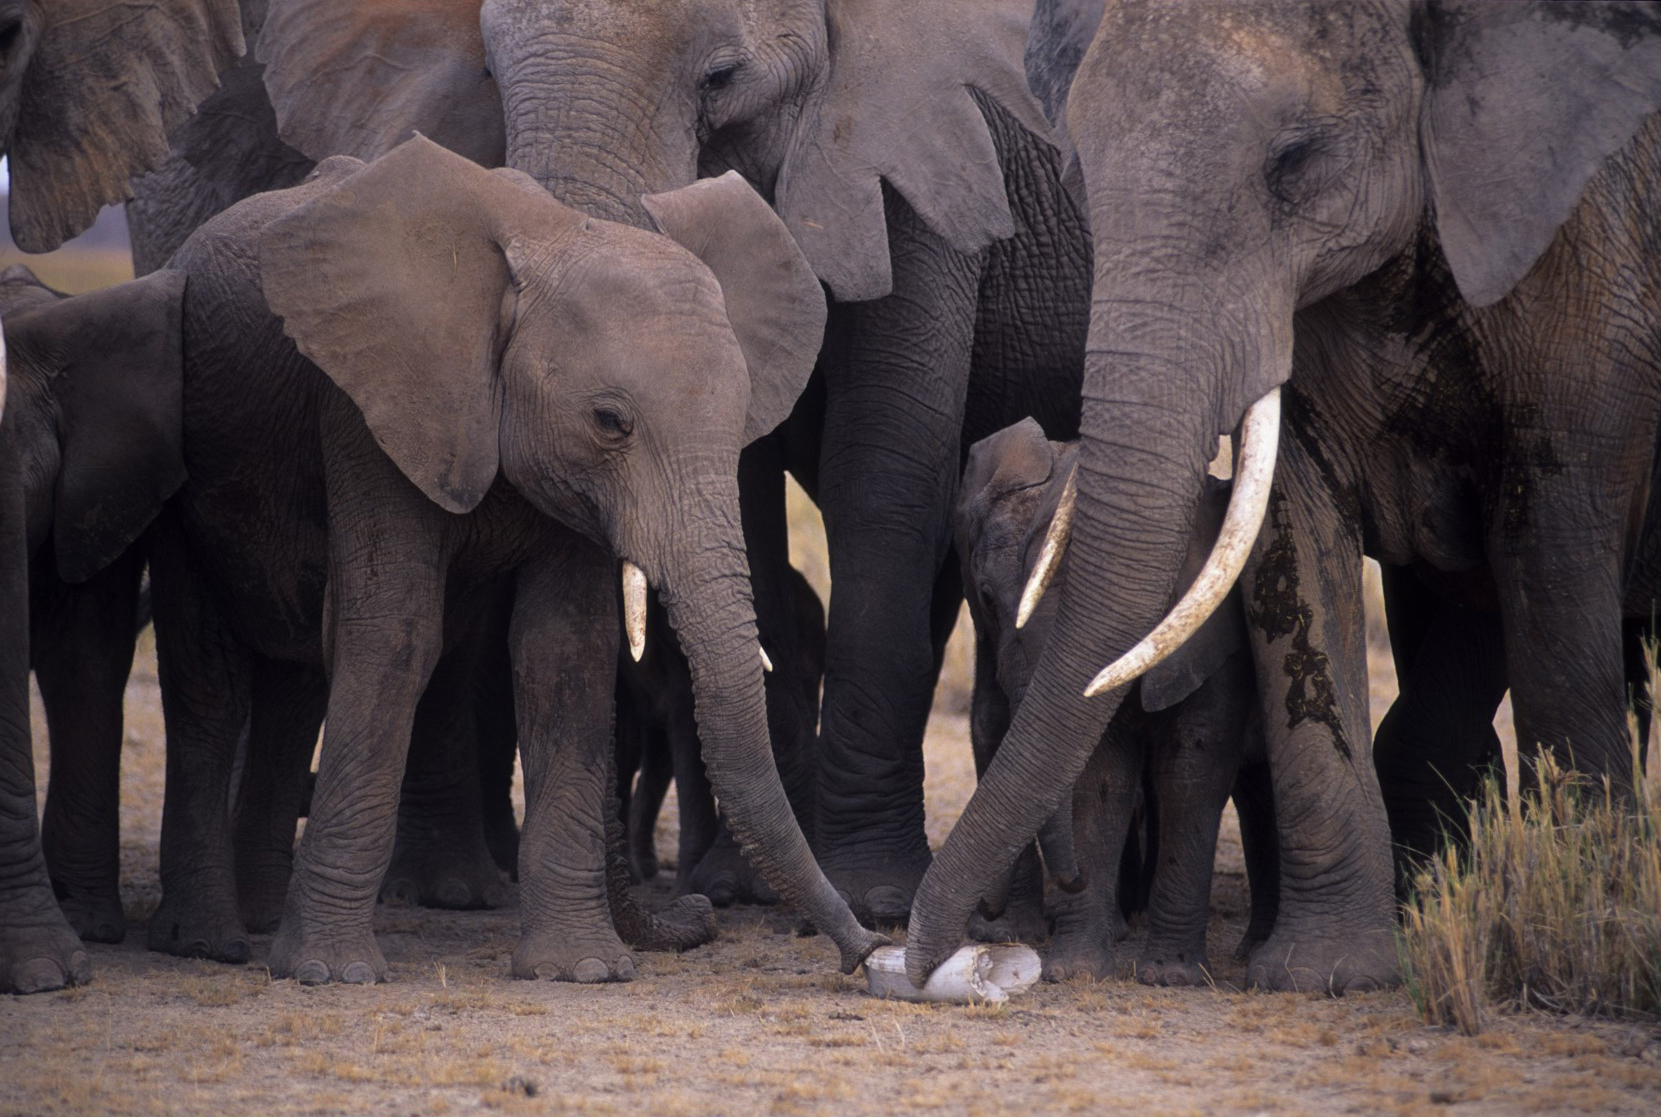 3a96f5c83e6c DNA testing of illegal ivory seized by law enforcement links ...